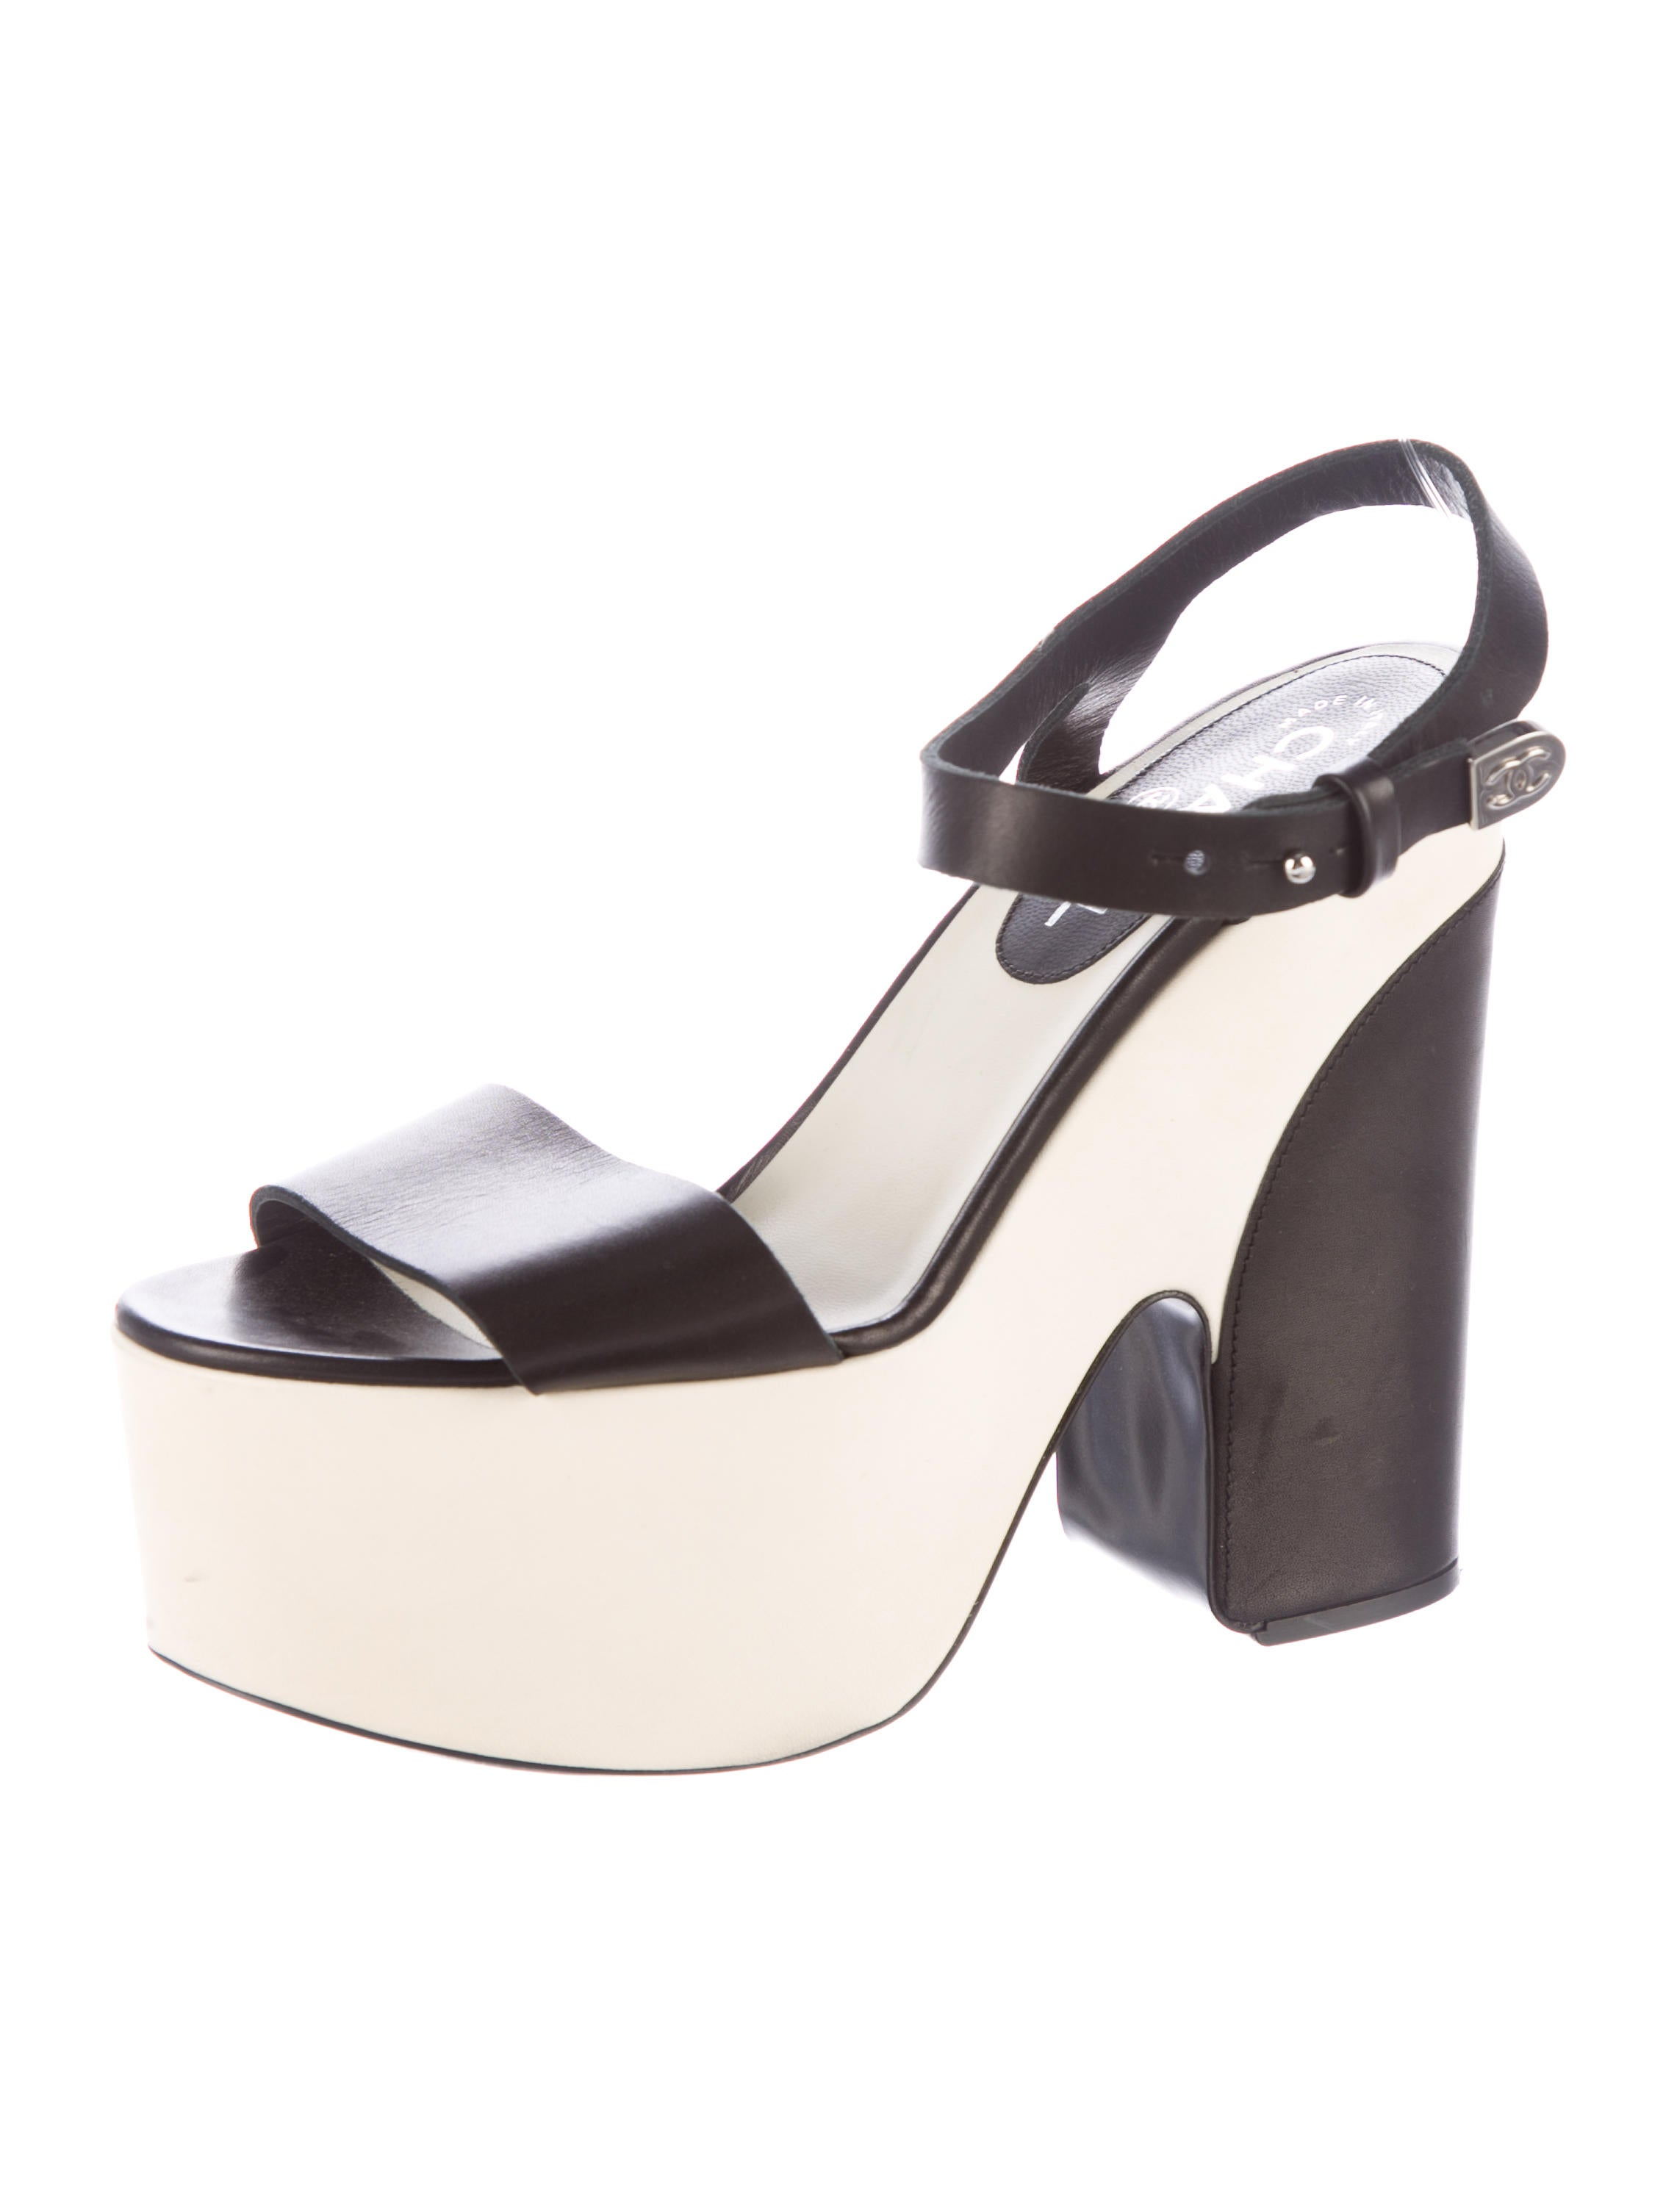 Chanel Leather Platform Ankle Strap Sandals - Shoes - CHA188169 | The RealReal